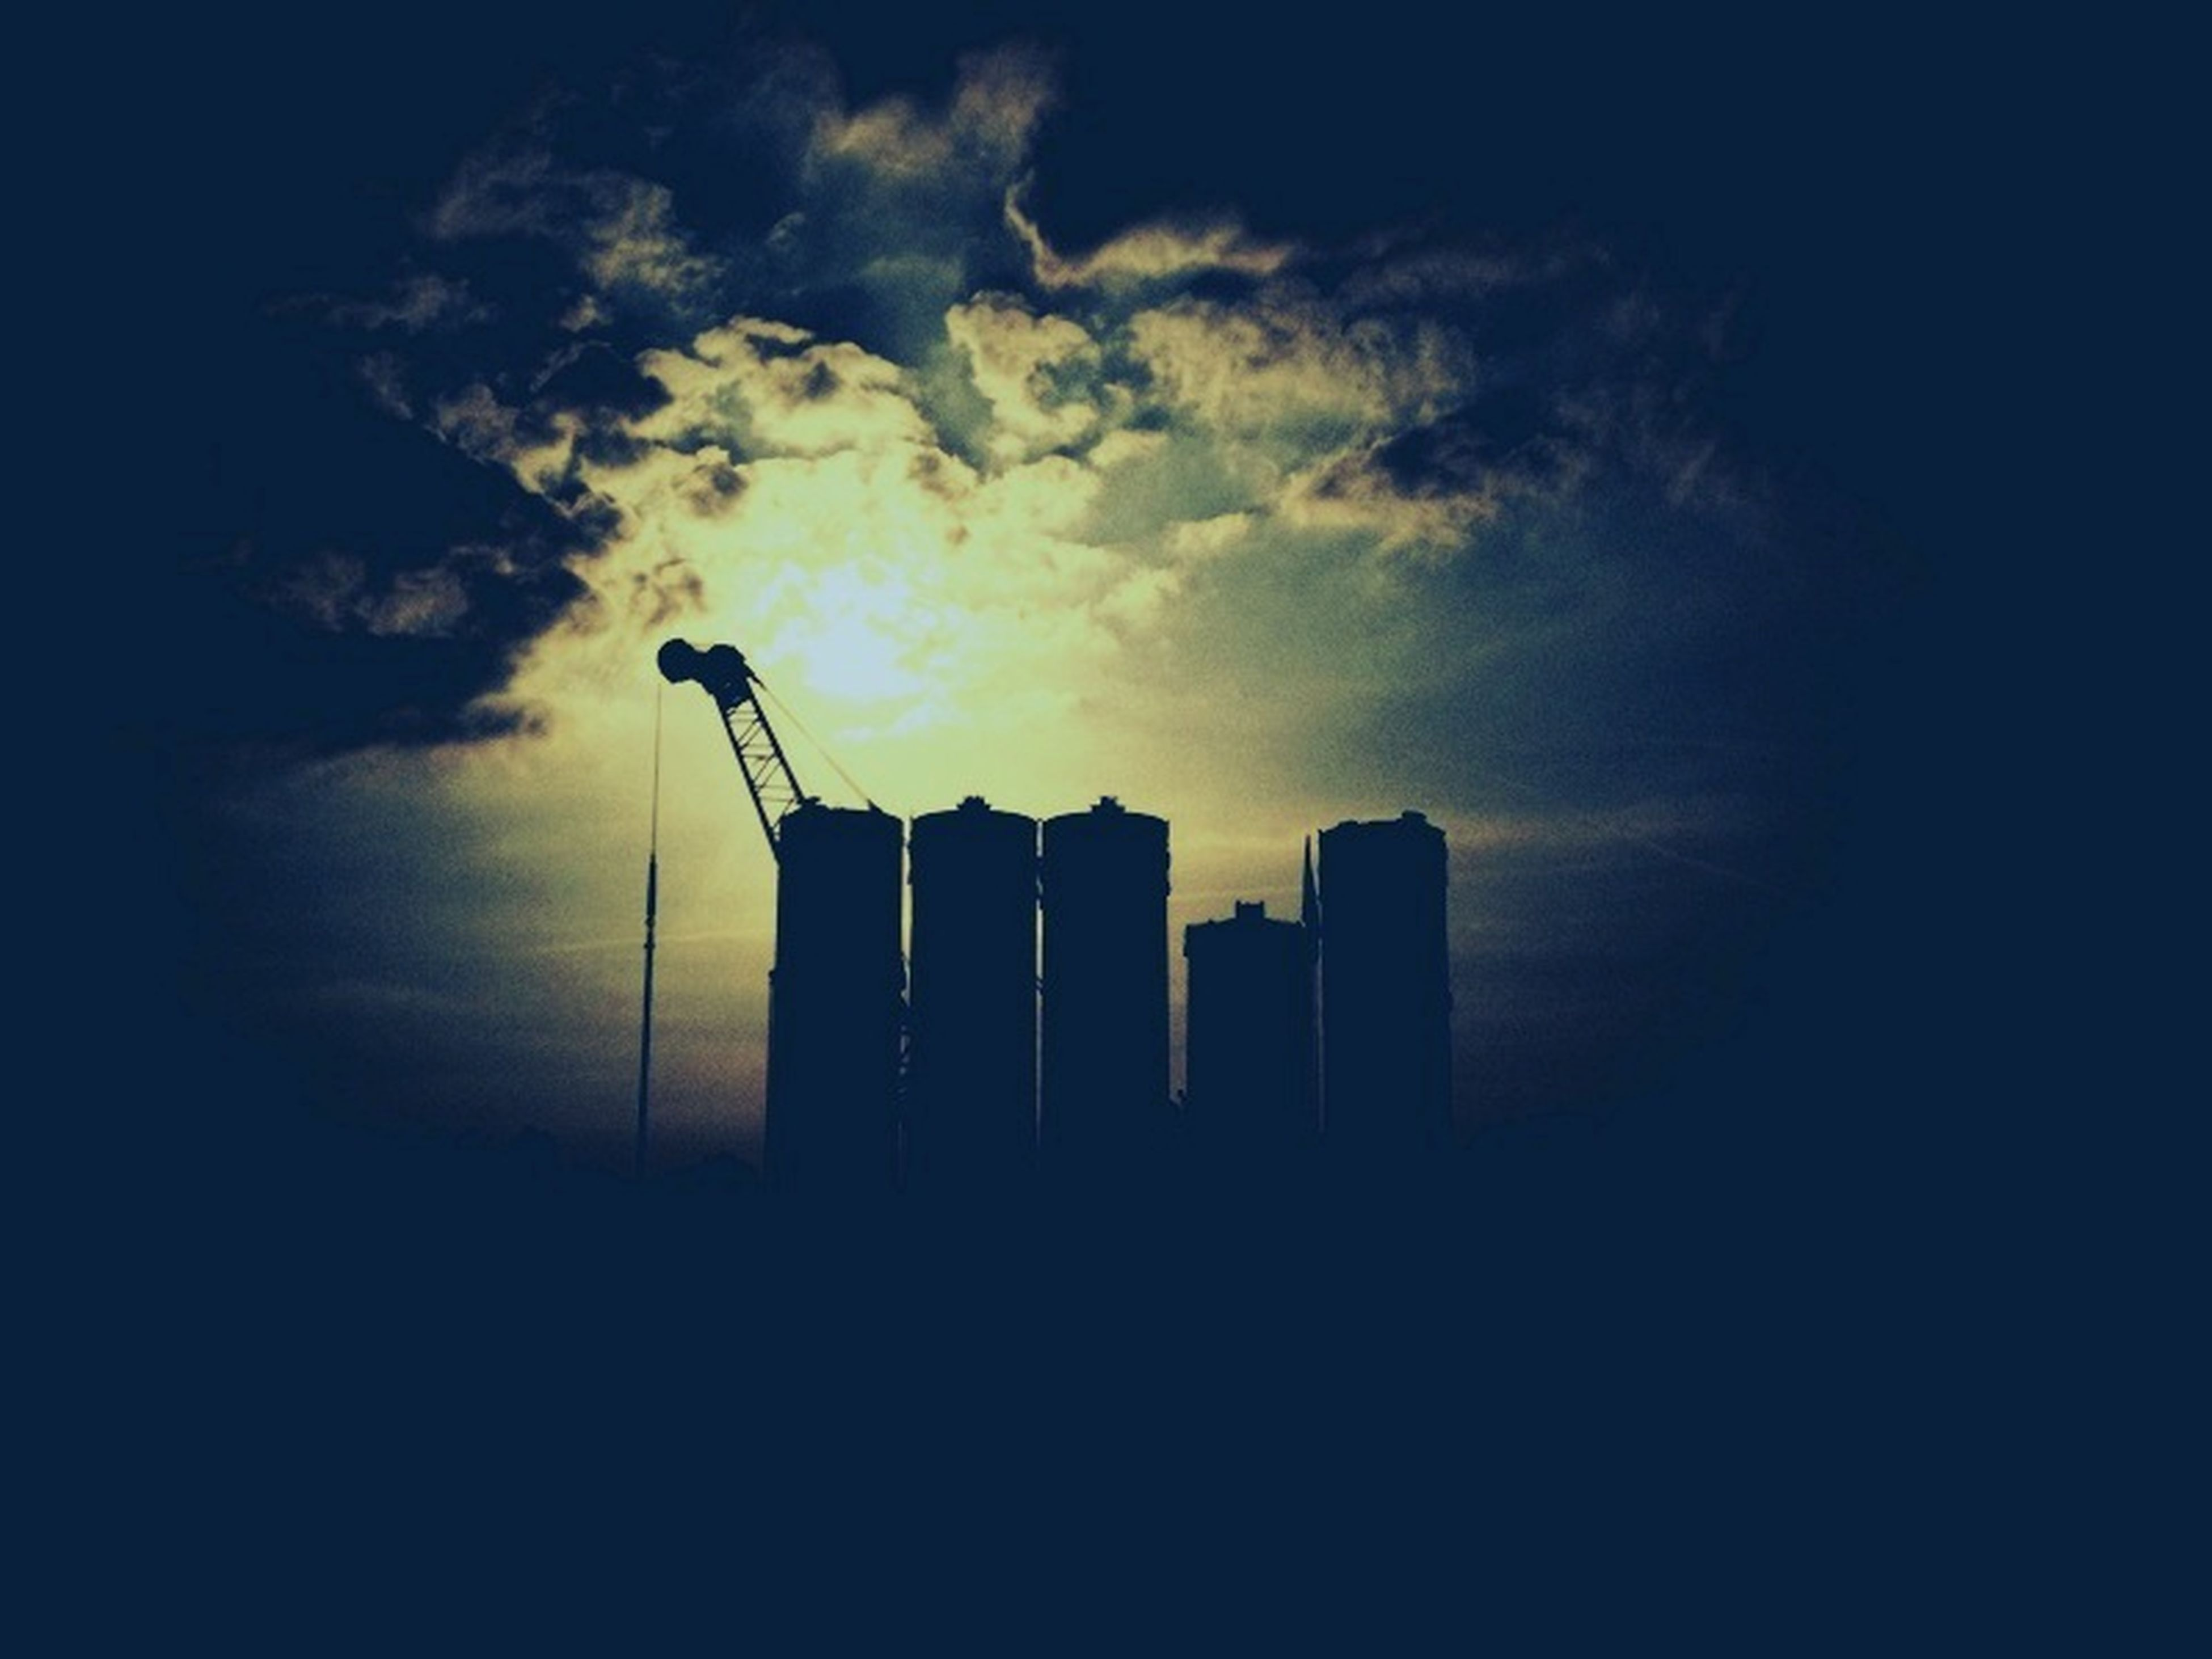 sky, building exterior, architecture, built structure, silhouette, low angle view, cloud - sky, sunset, cloudy, tower, tall - high, city, dusk, skyscraper, building, cloud, outdoors, dark, no people, weather